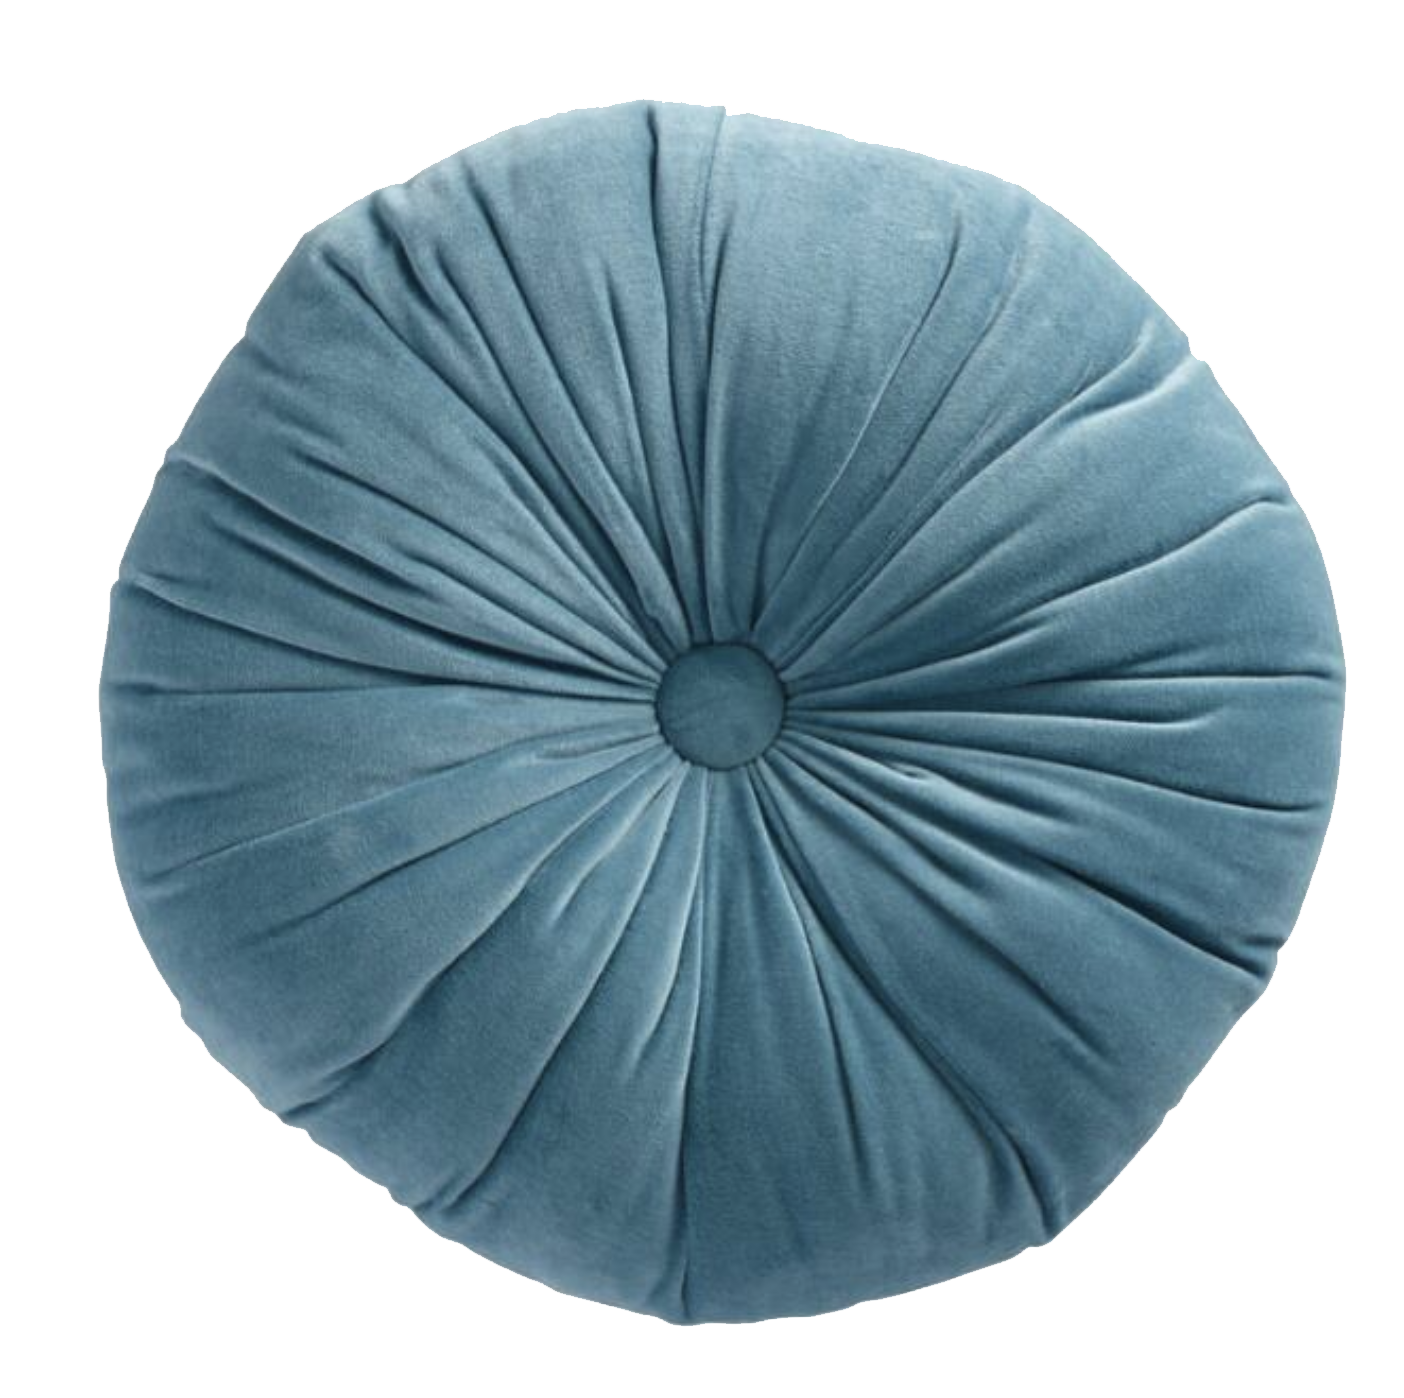 Blue Round Pillow.png